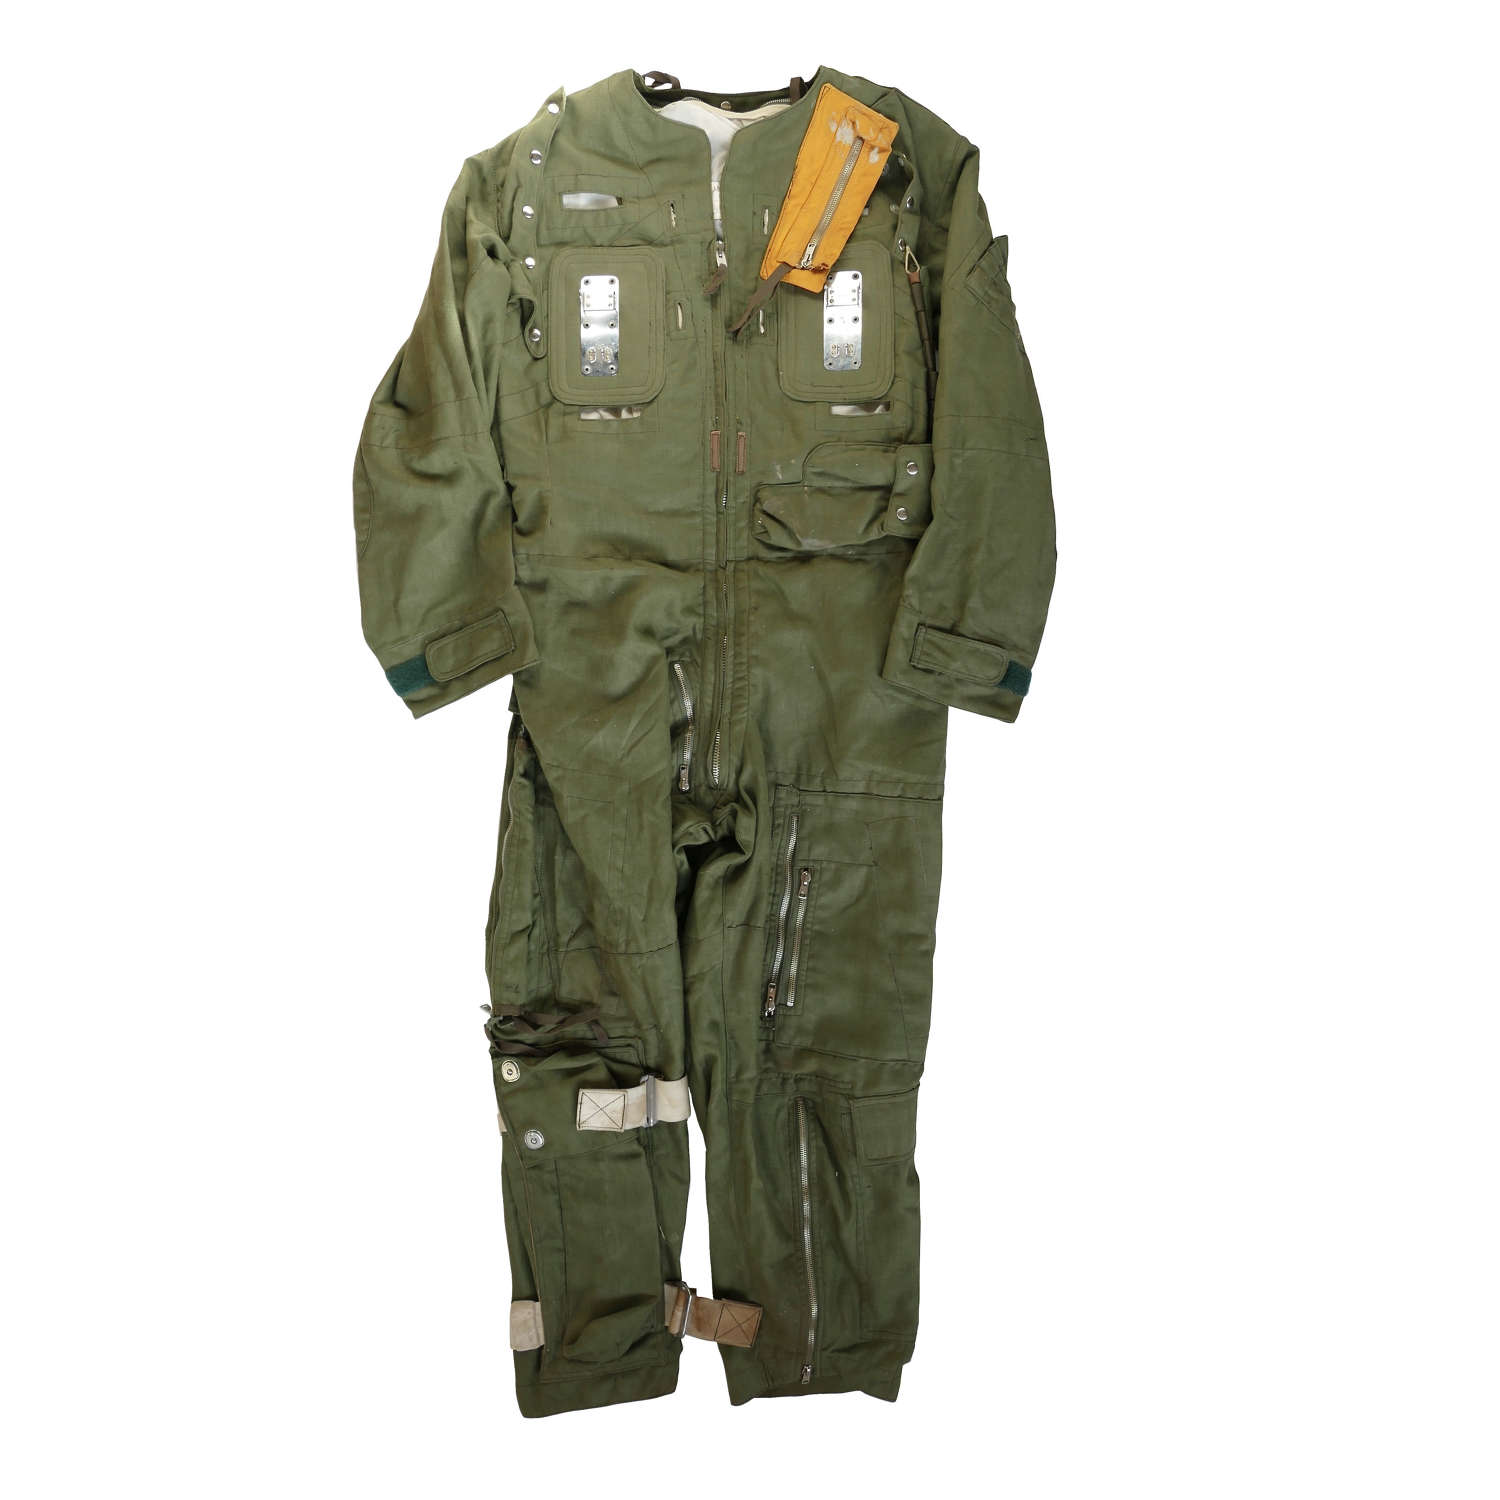 RAF flying suit, Mk.5 combined with harness Type D, Mk.3